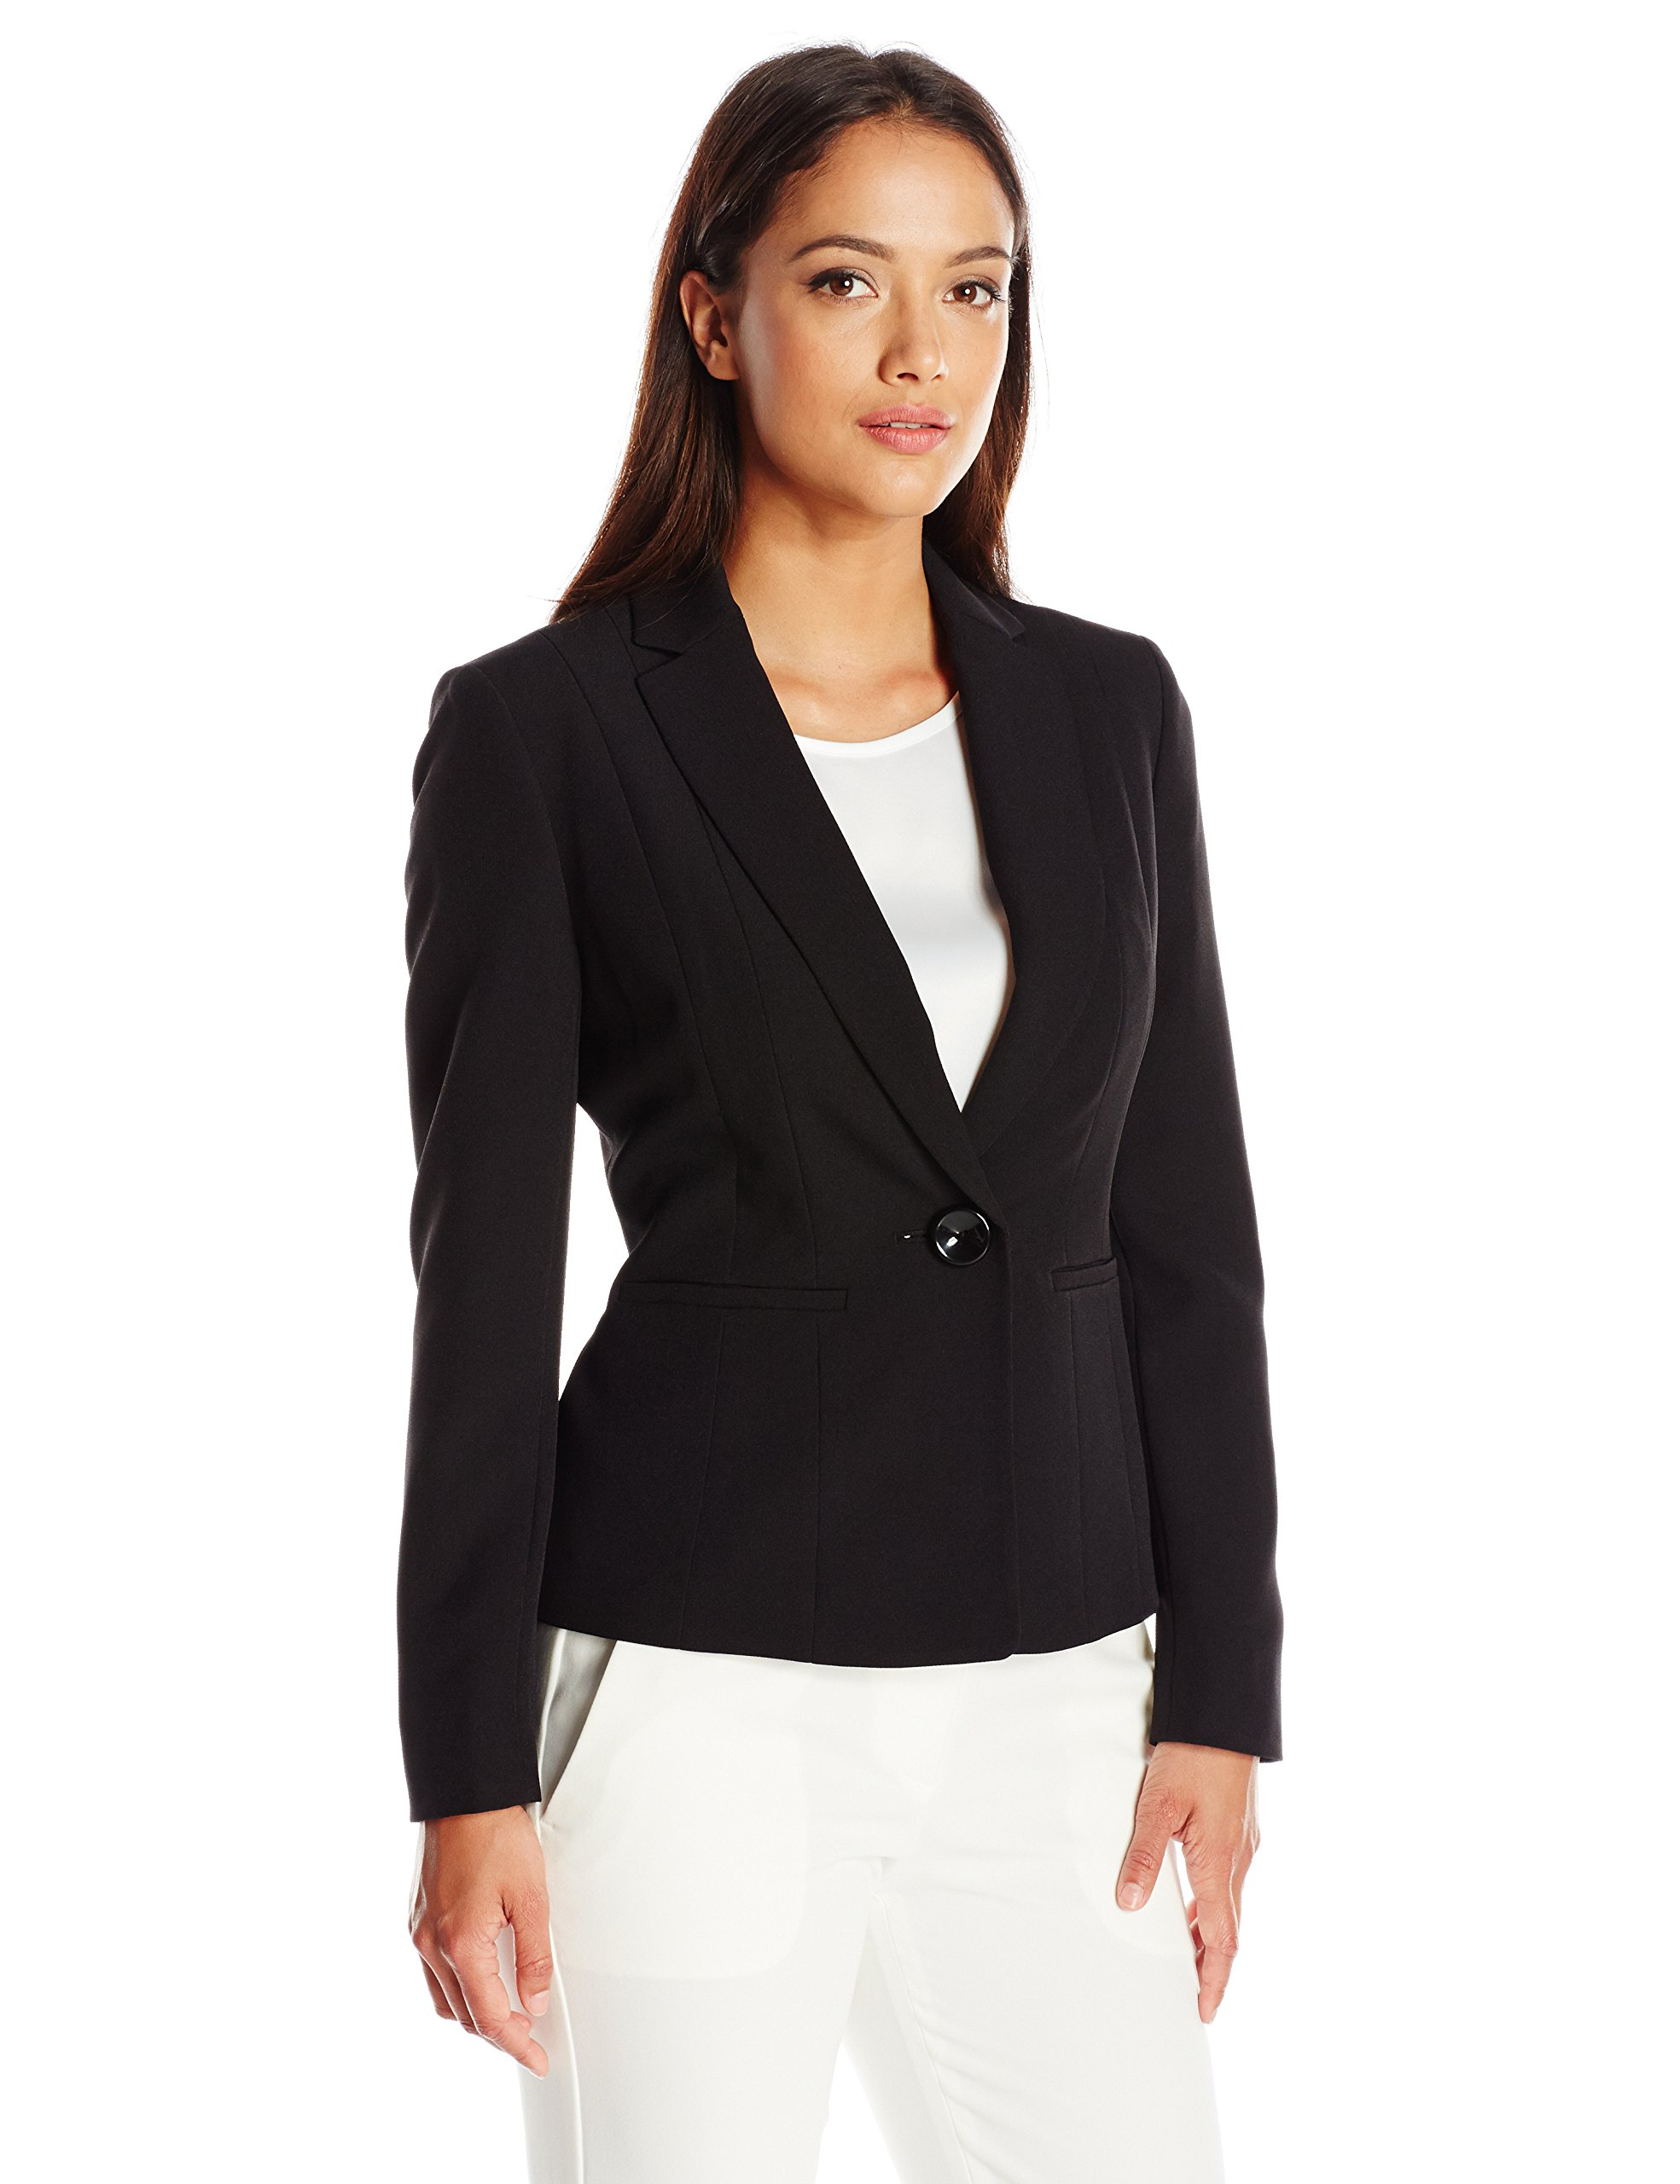 Kasper Women's Size Stretch Crepe One Button Jacket, Black, 14 Petite